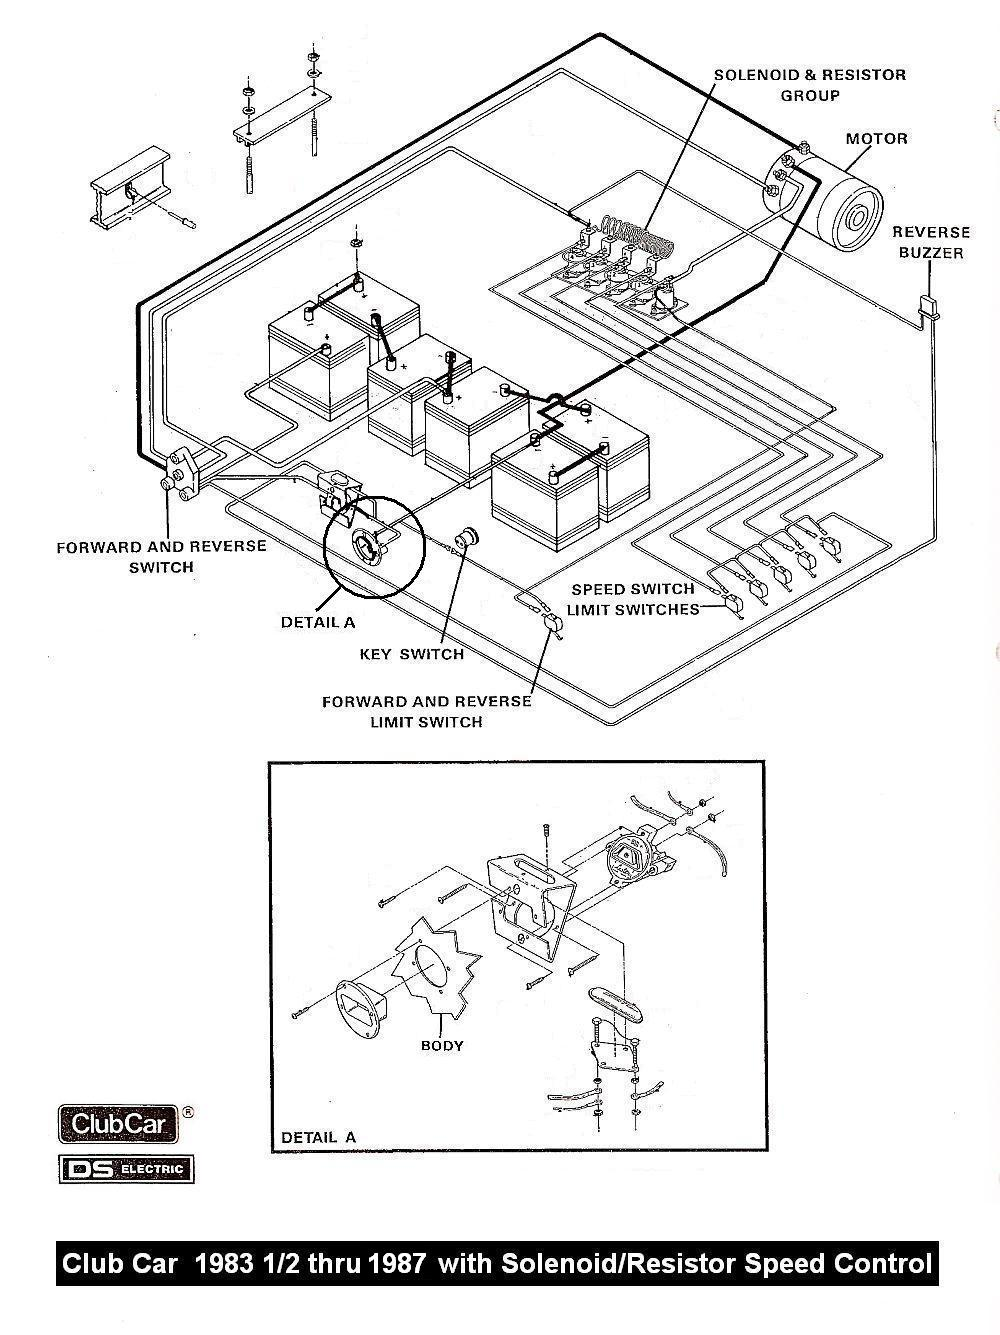 medium resolution of 84 club car wiring diagram schematic wiring diagram todays rh 9 15 7 1813weddingbarn com 1986 club car golf cart wiring diagram 86 club car wiring diagram